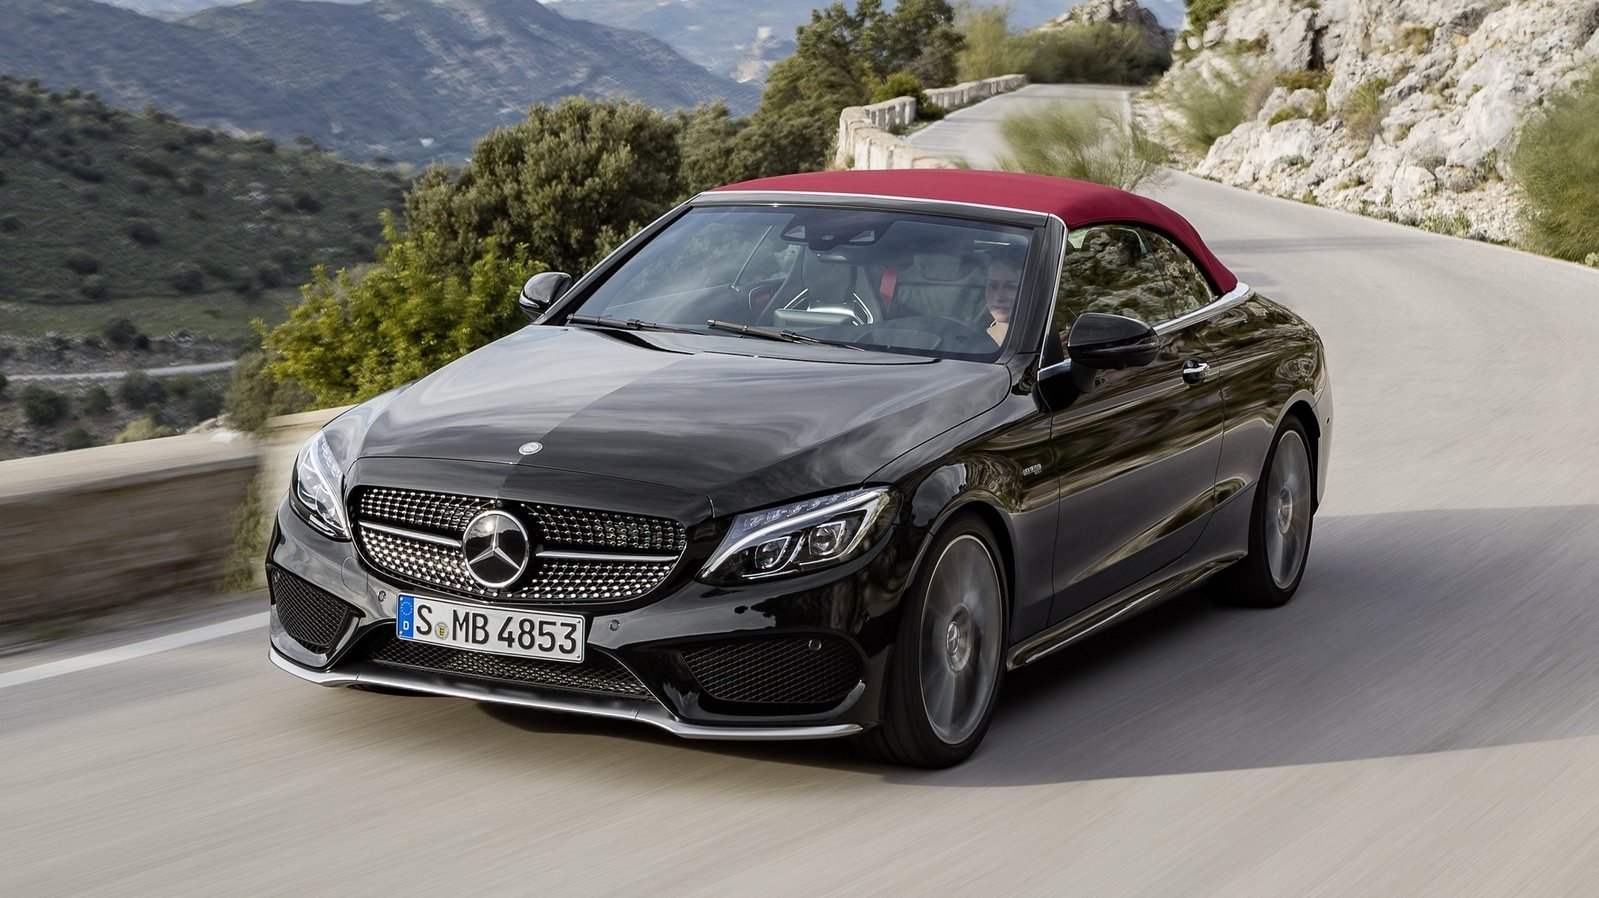 2017 mercedes amg c 43 4matic cabriolet top speed. Black Bedroom Furniture Sets. Home Design Ideas